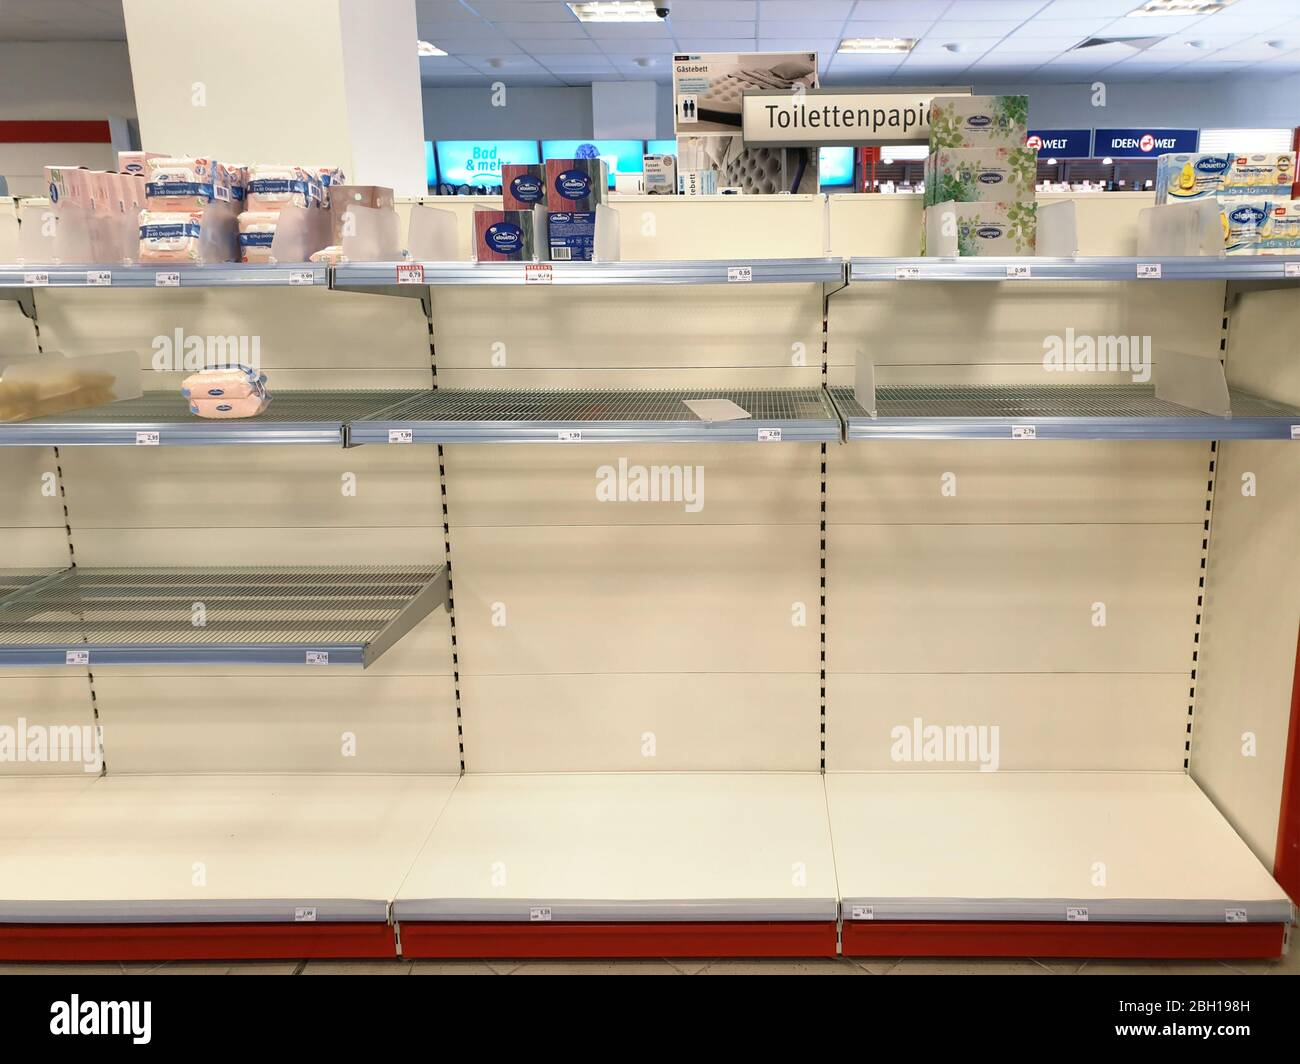 Gästebett Ideen Empty Rack In A Supermarket While Panic Buying At Corona Crisis, Germany, North Rhine-westphalia Stock Photo - Alamy